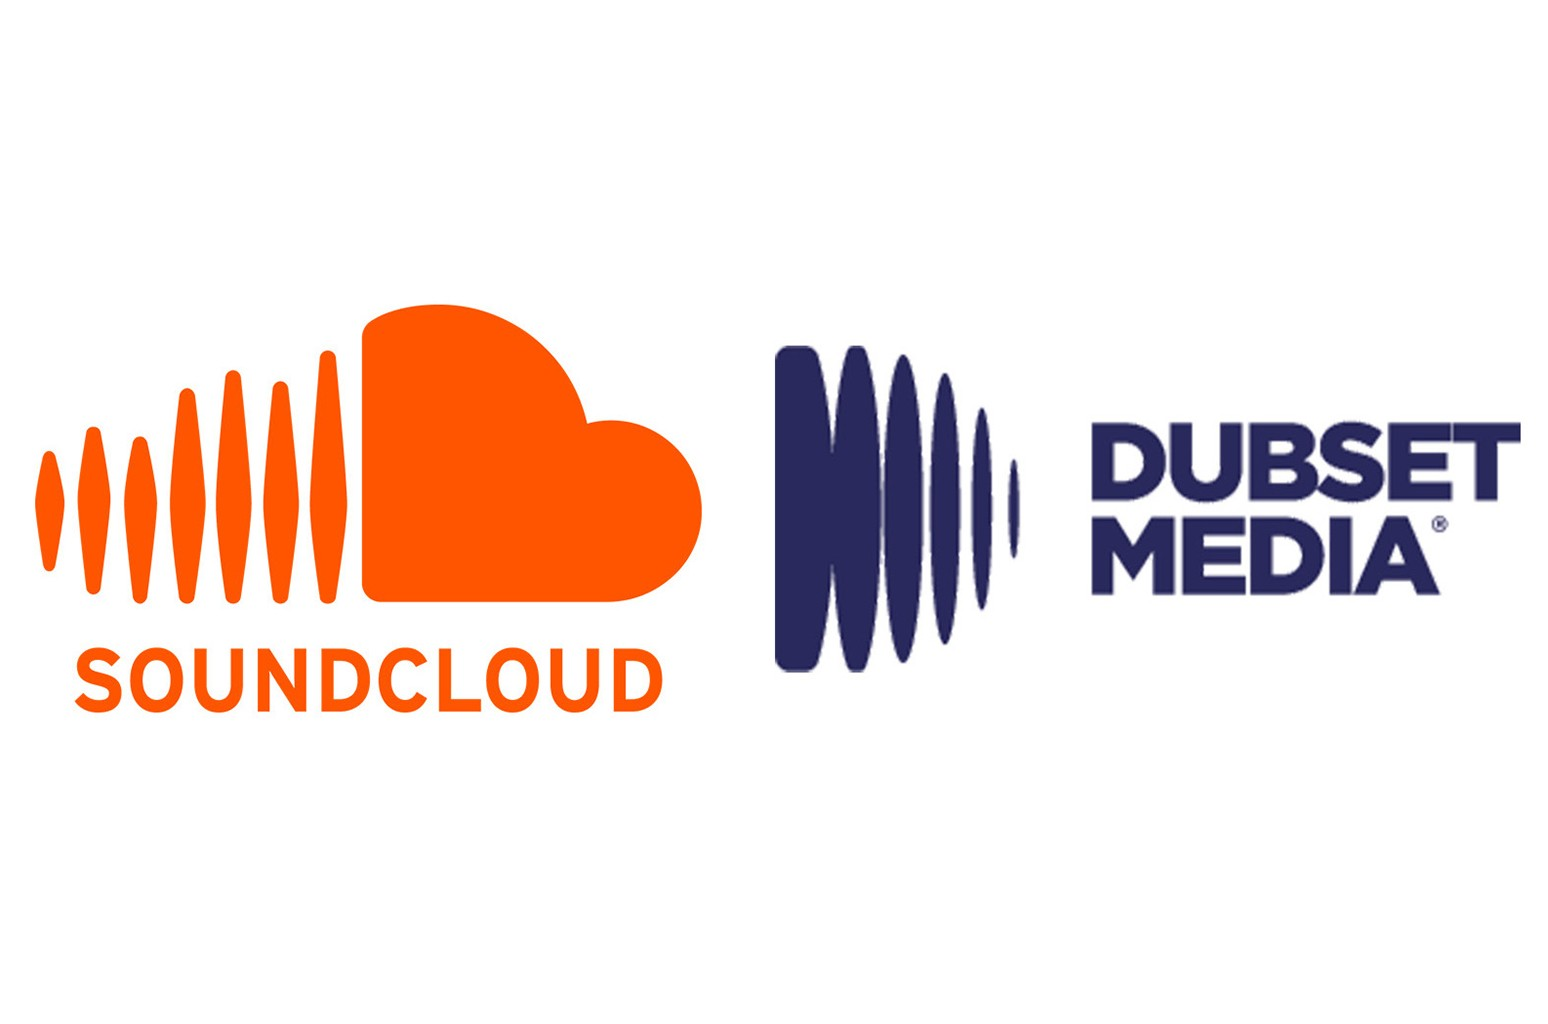 SoundCloud and Dubset Media